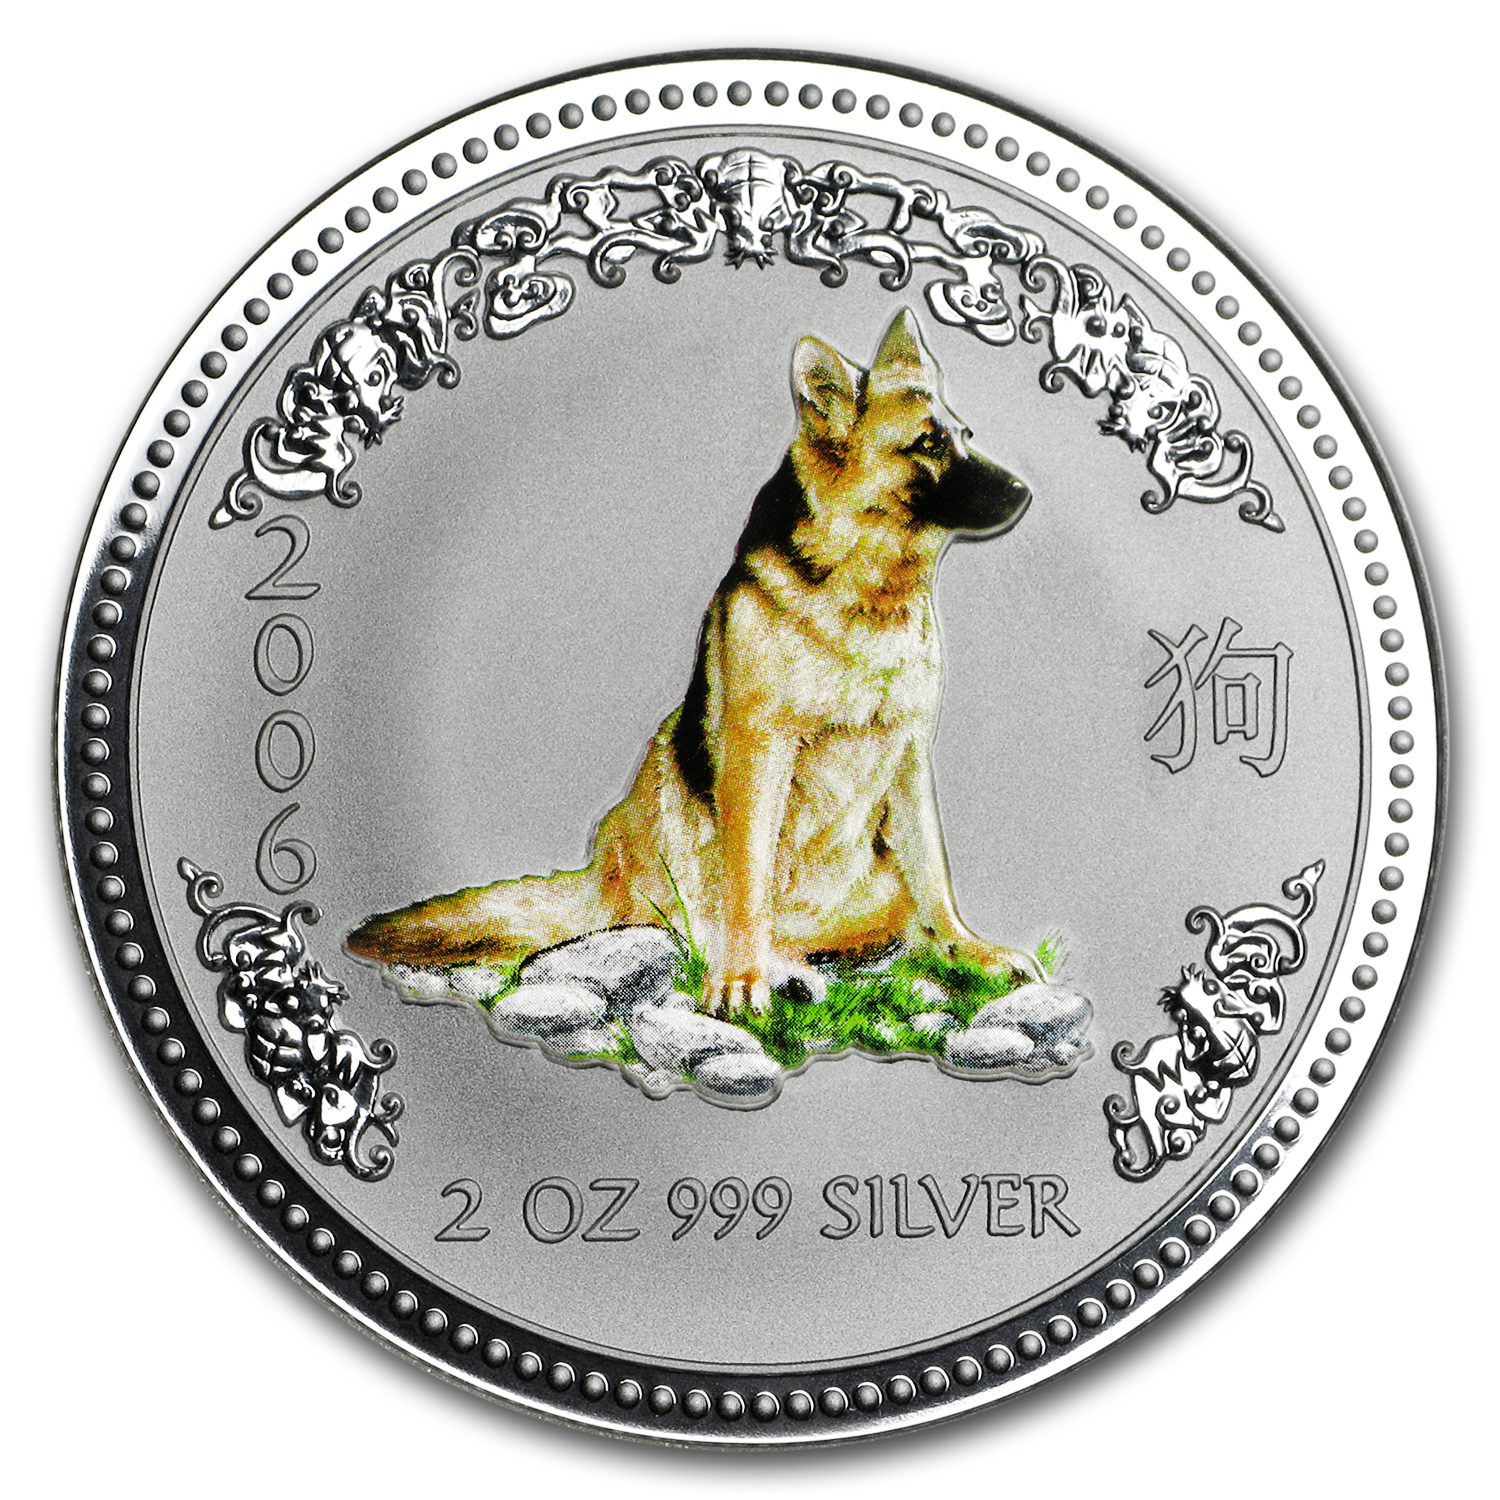 2006 Australia 2 oz Silver Year of the Dog BU (Colorized)